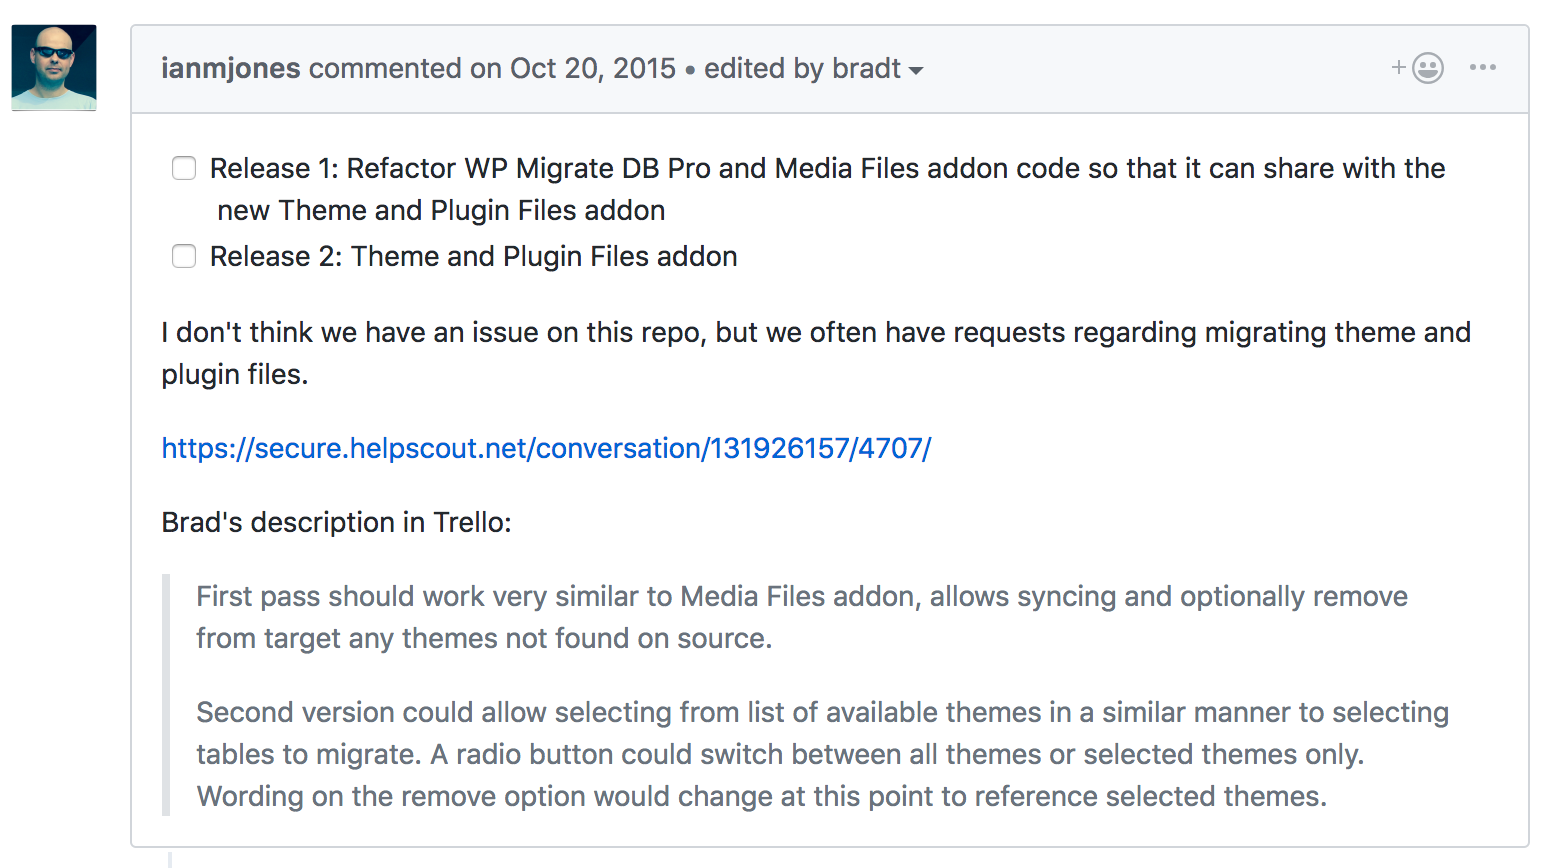 Introducing the Theme & Plugin Files Addon for WP Migrate DB Pro